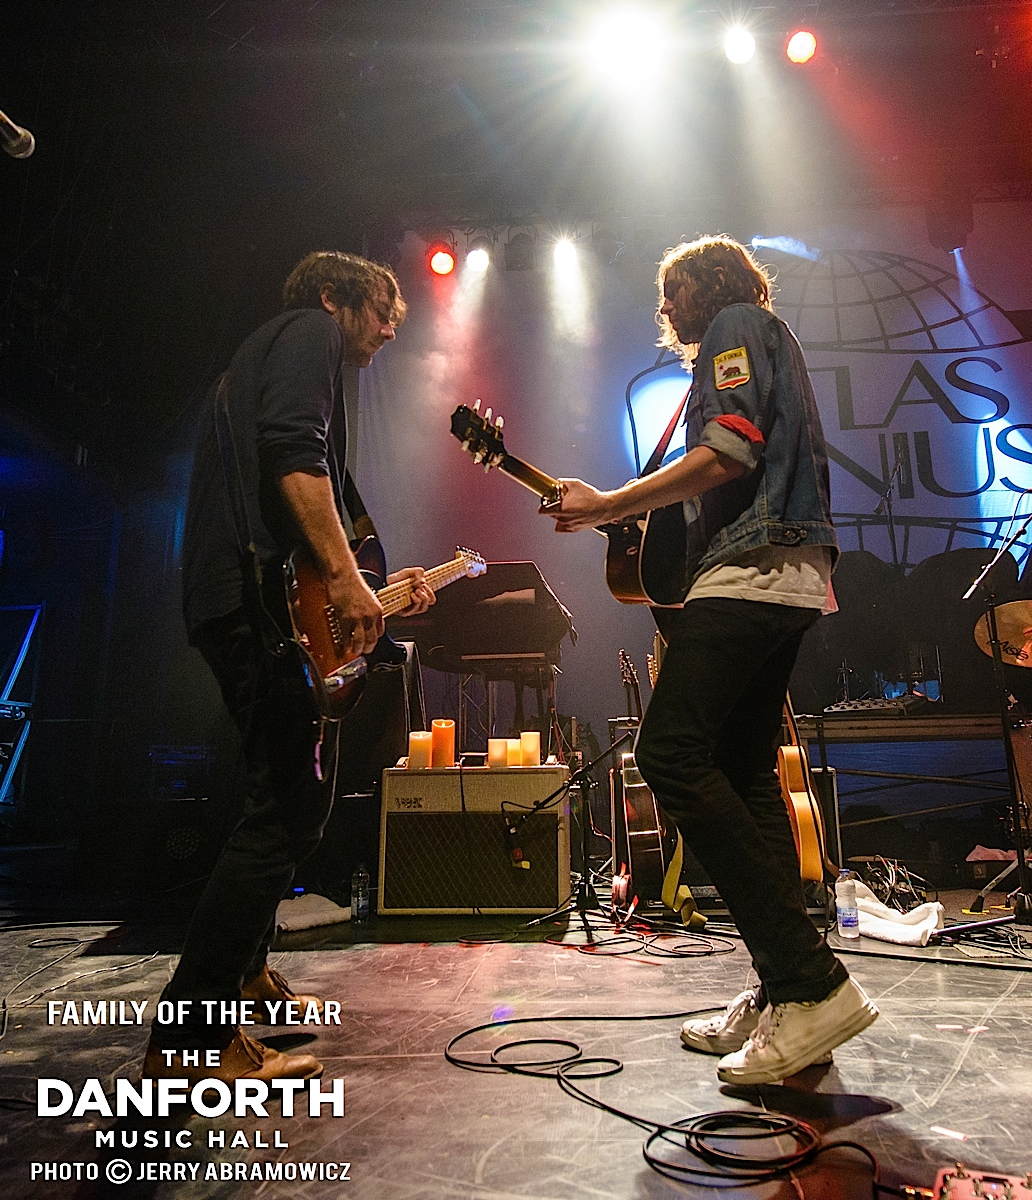 20131004 Family of the Year at The Danforth Music Hall Toronto 0142